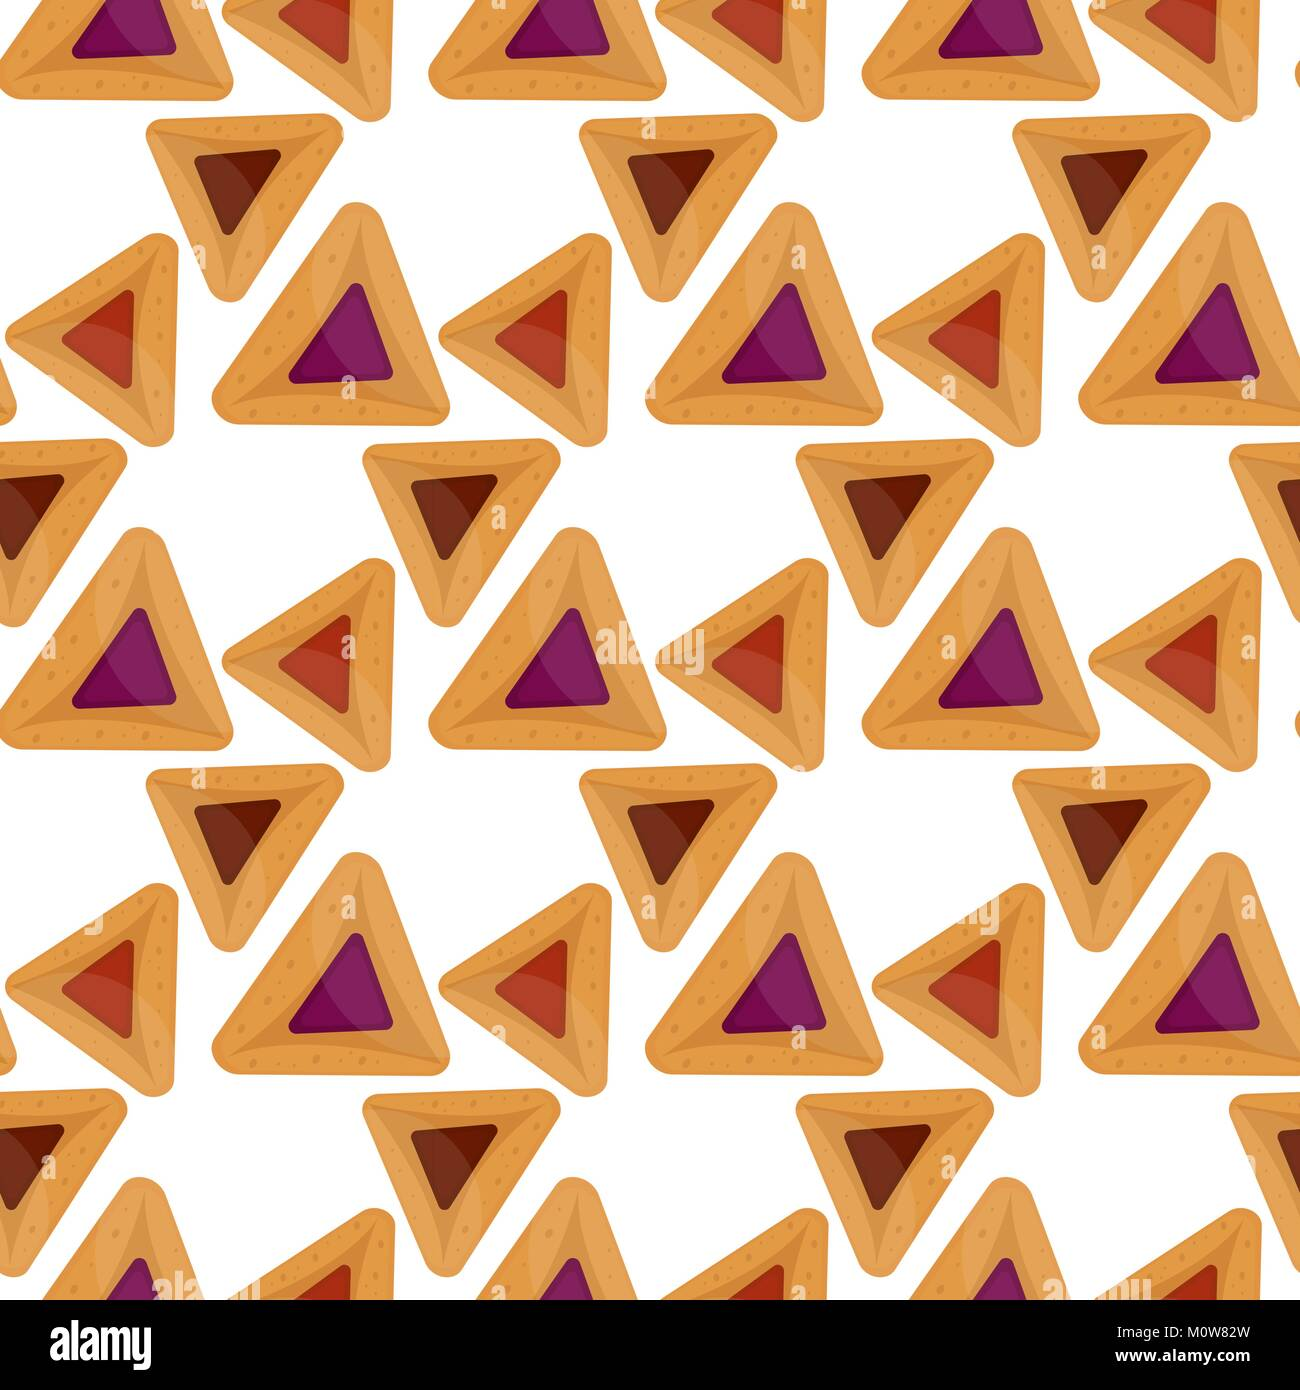 Purim hamantaschen seamless pattern. Jewish traditional dish on the holiday of Purim. endless background, texture, - Stock Image